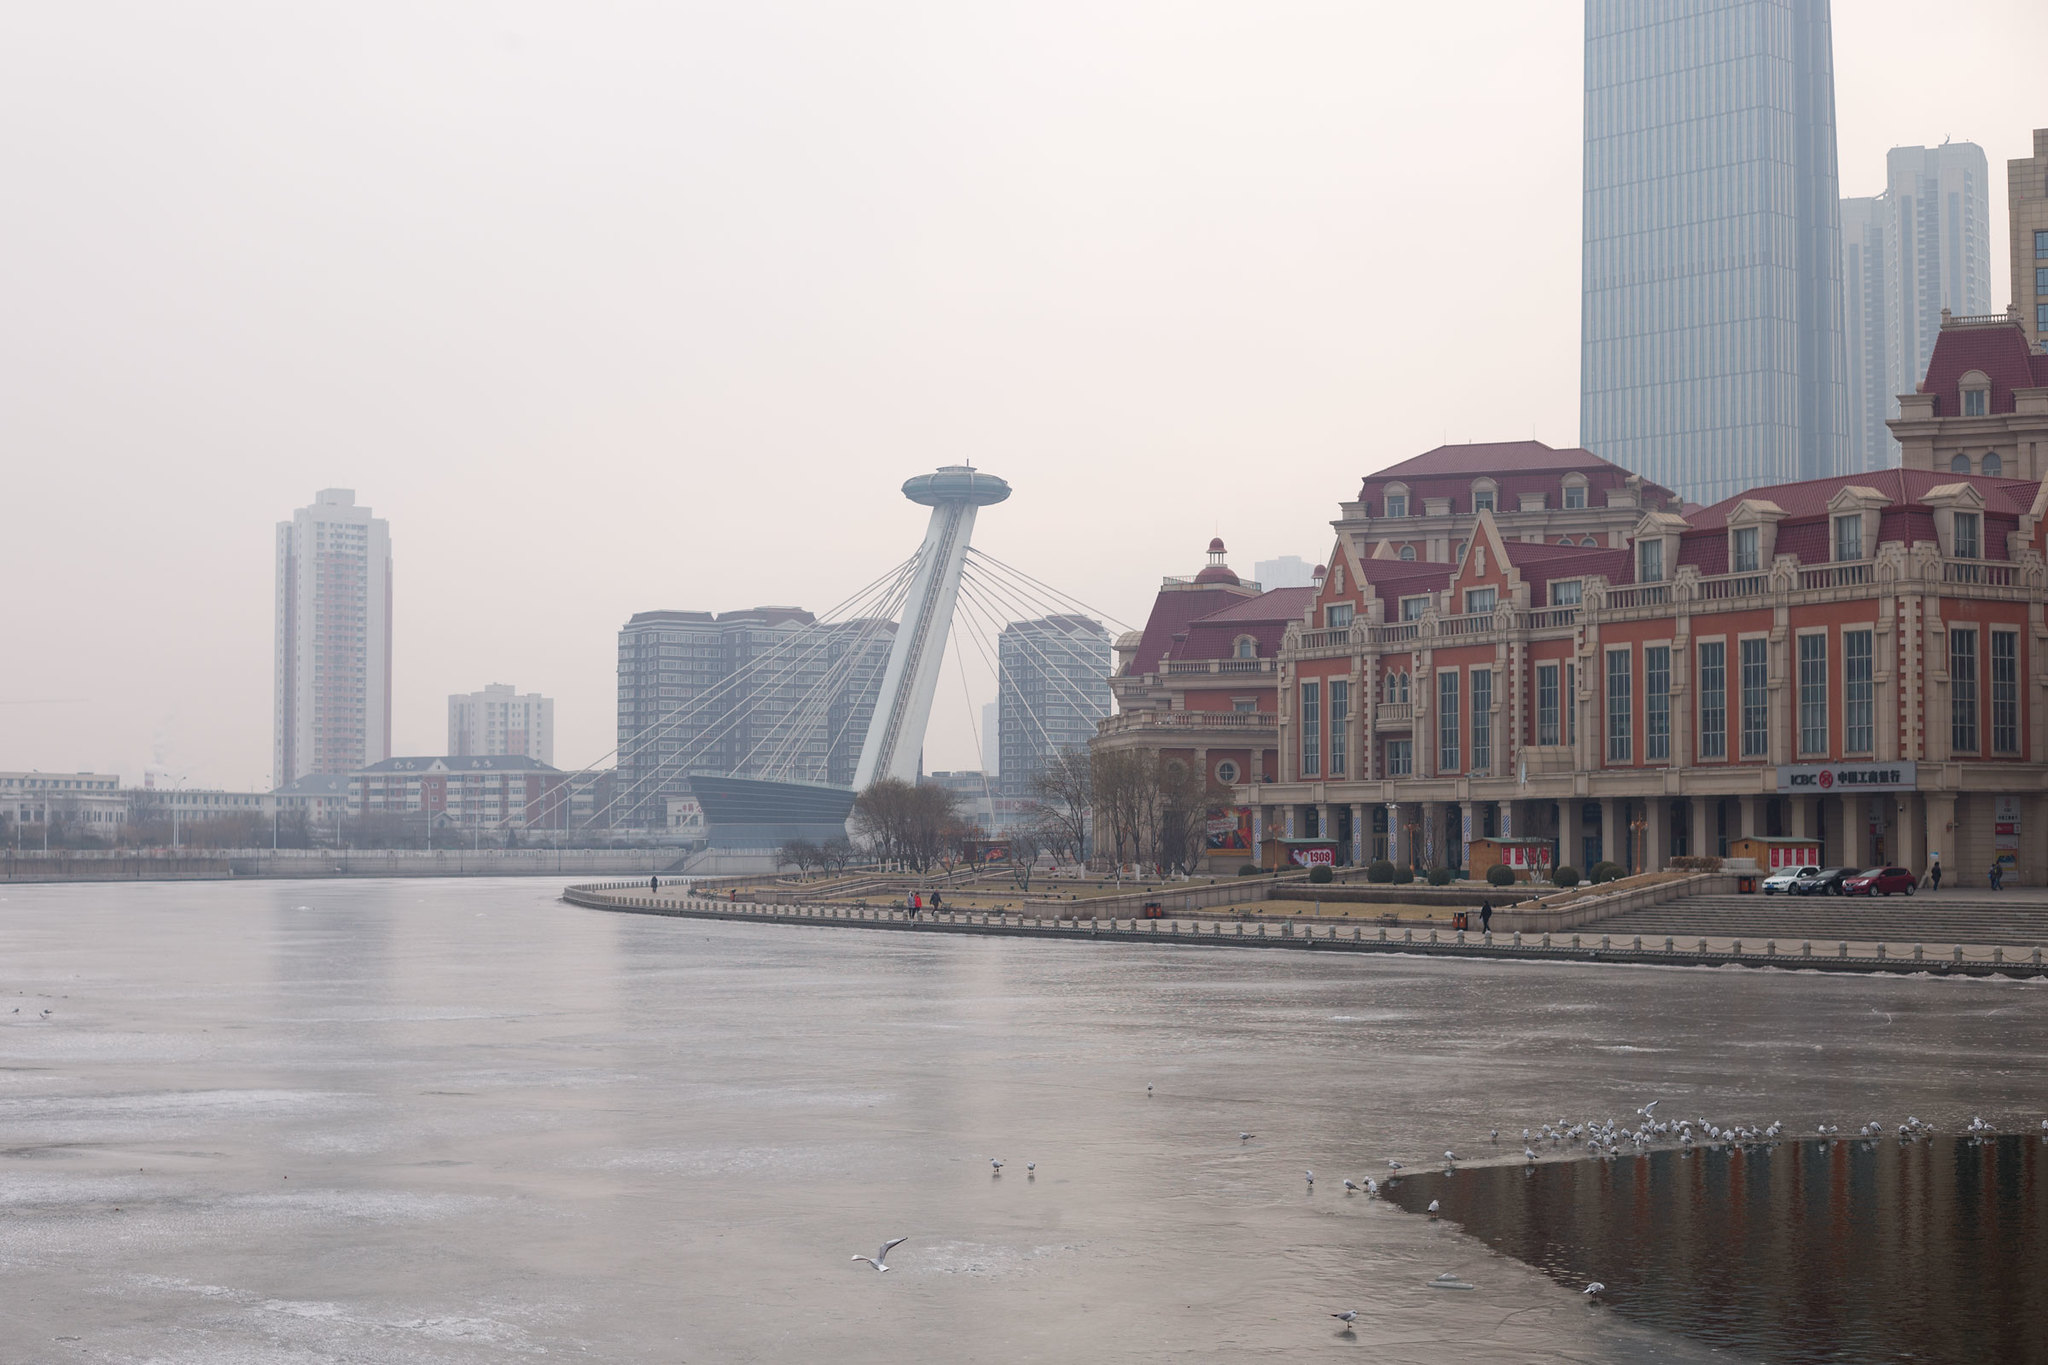 Tianjin Waterfront